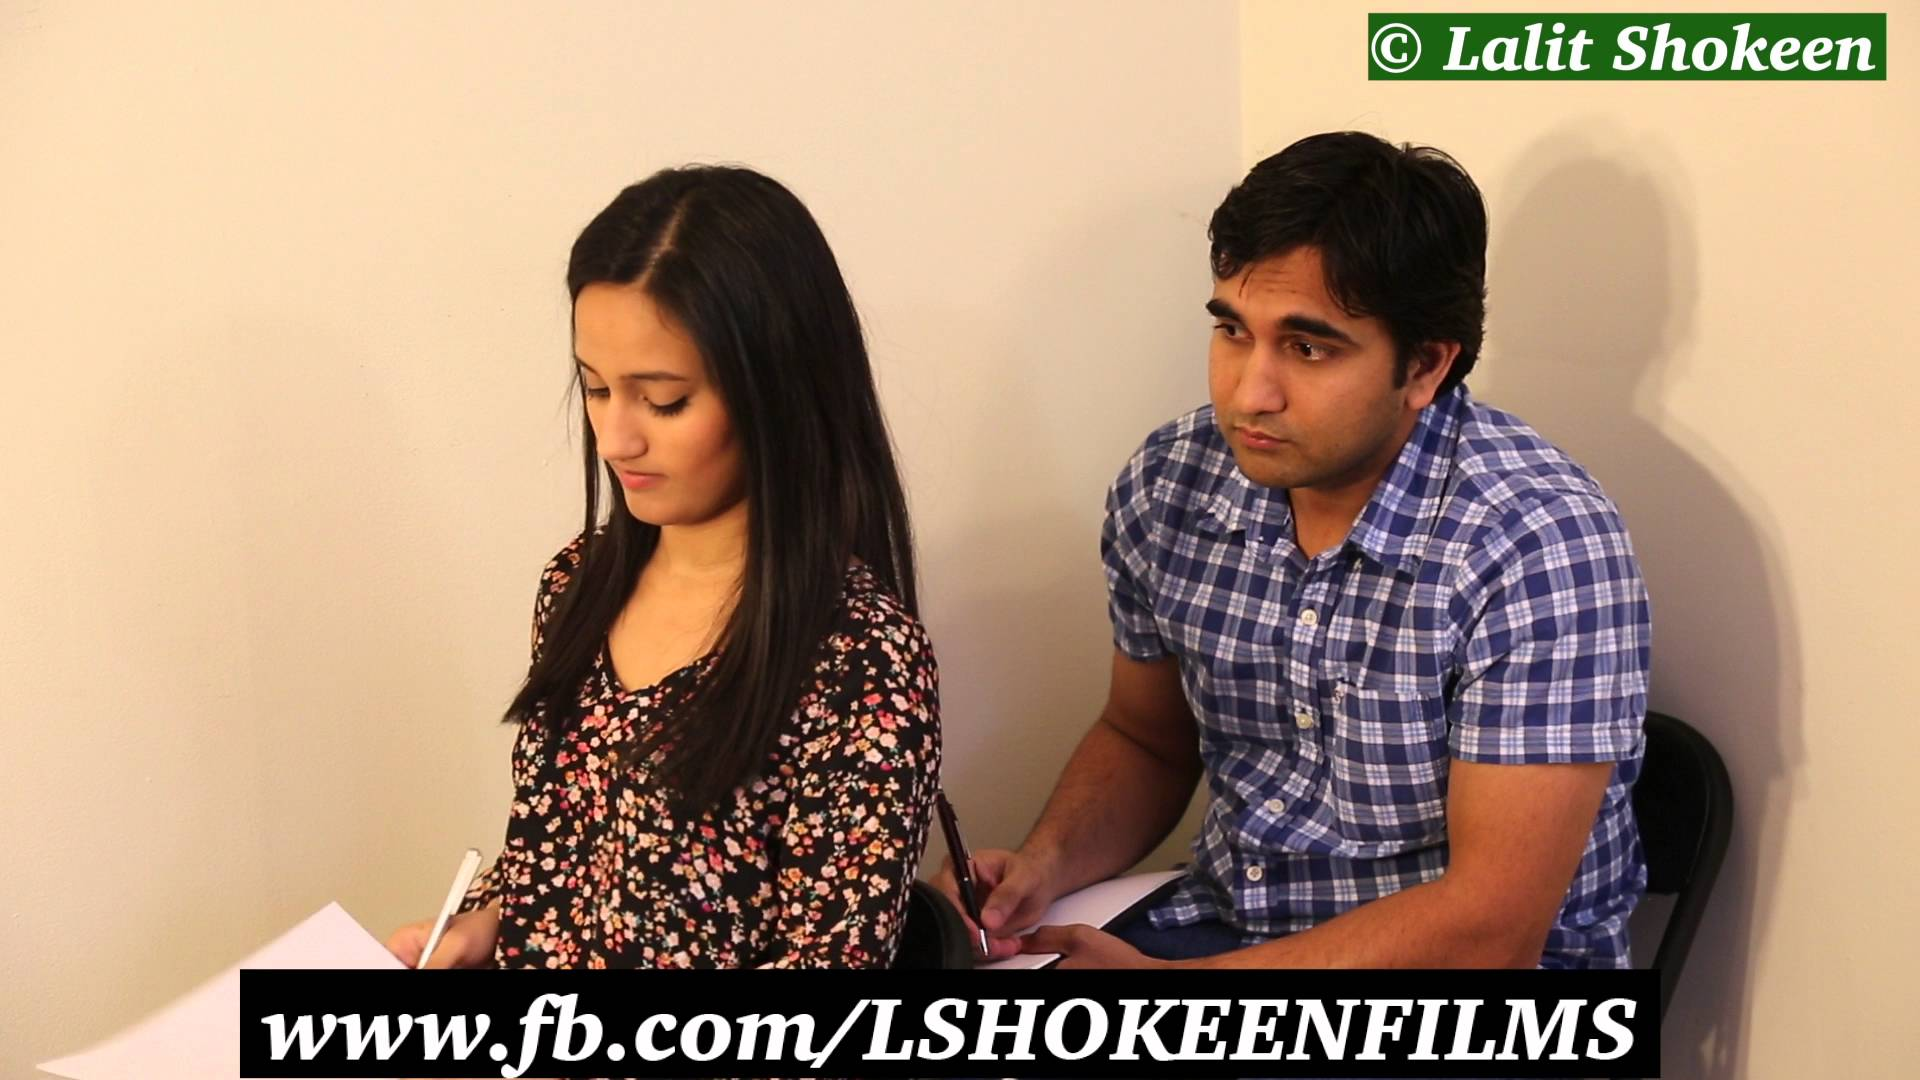 LShokeen – Girls and Boys behave differently in exams